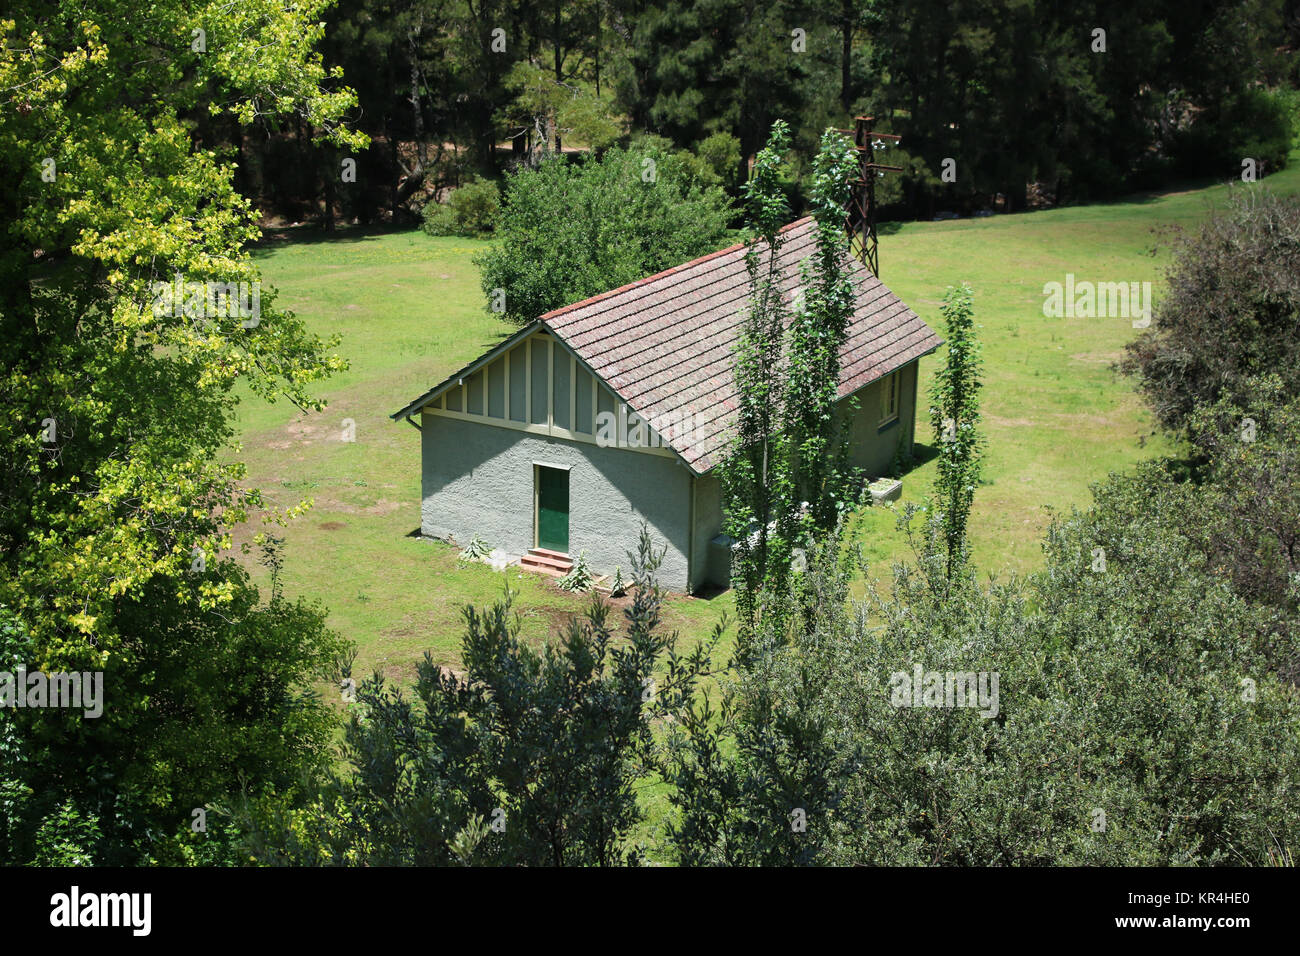 Singular House in the Bush - Stock Image